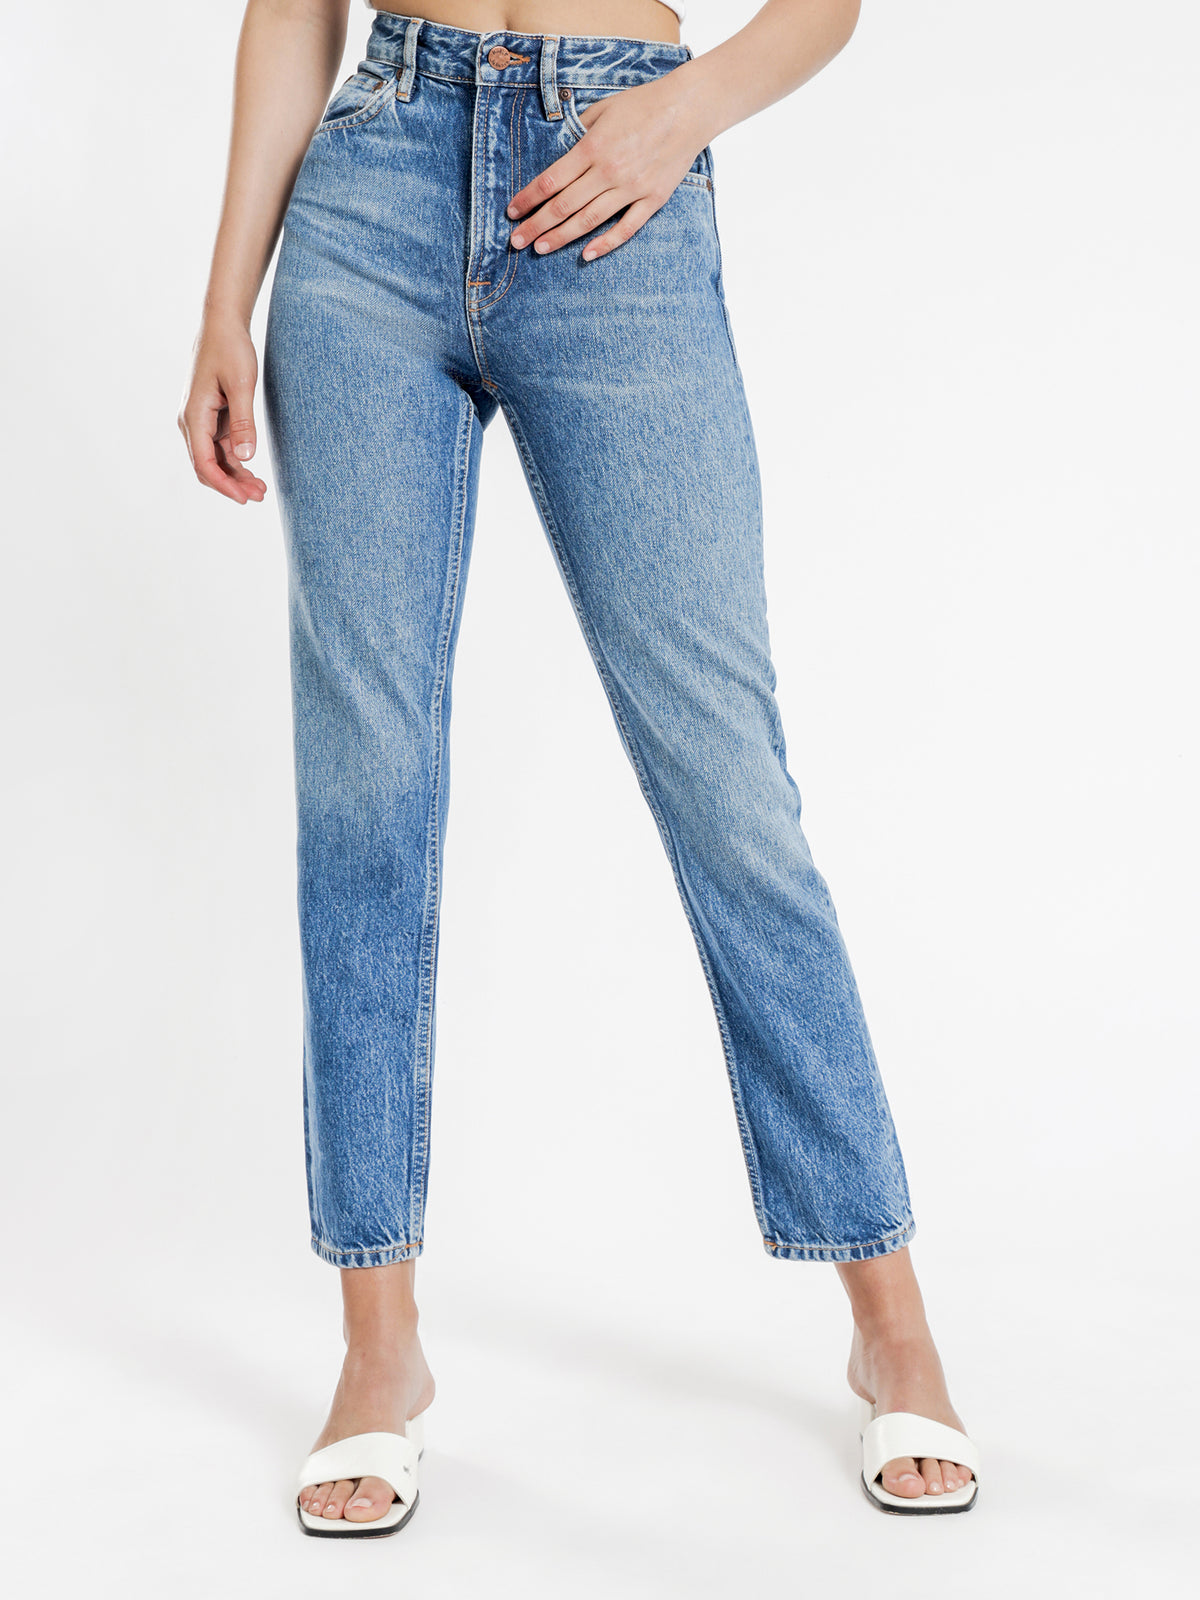 Breezy Britt Mom Jeans in Orange Skin Blue Denim